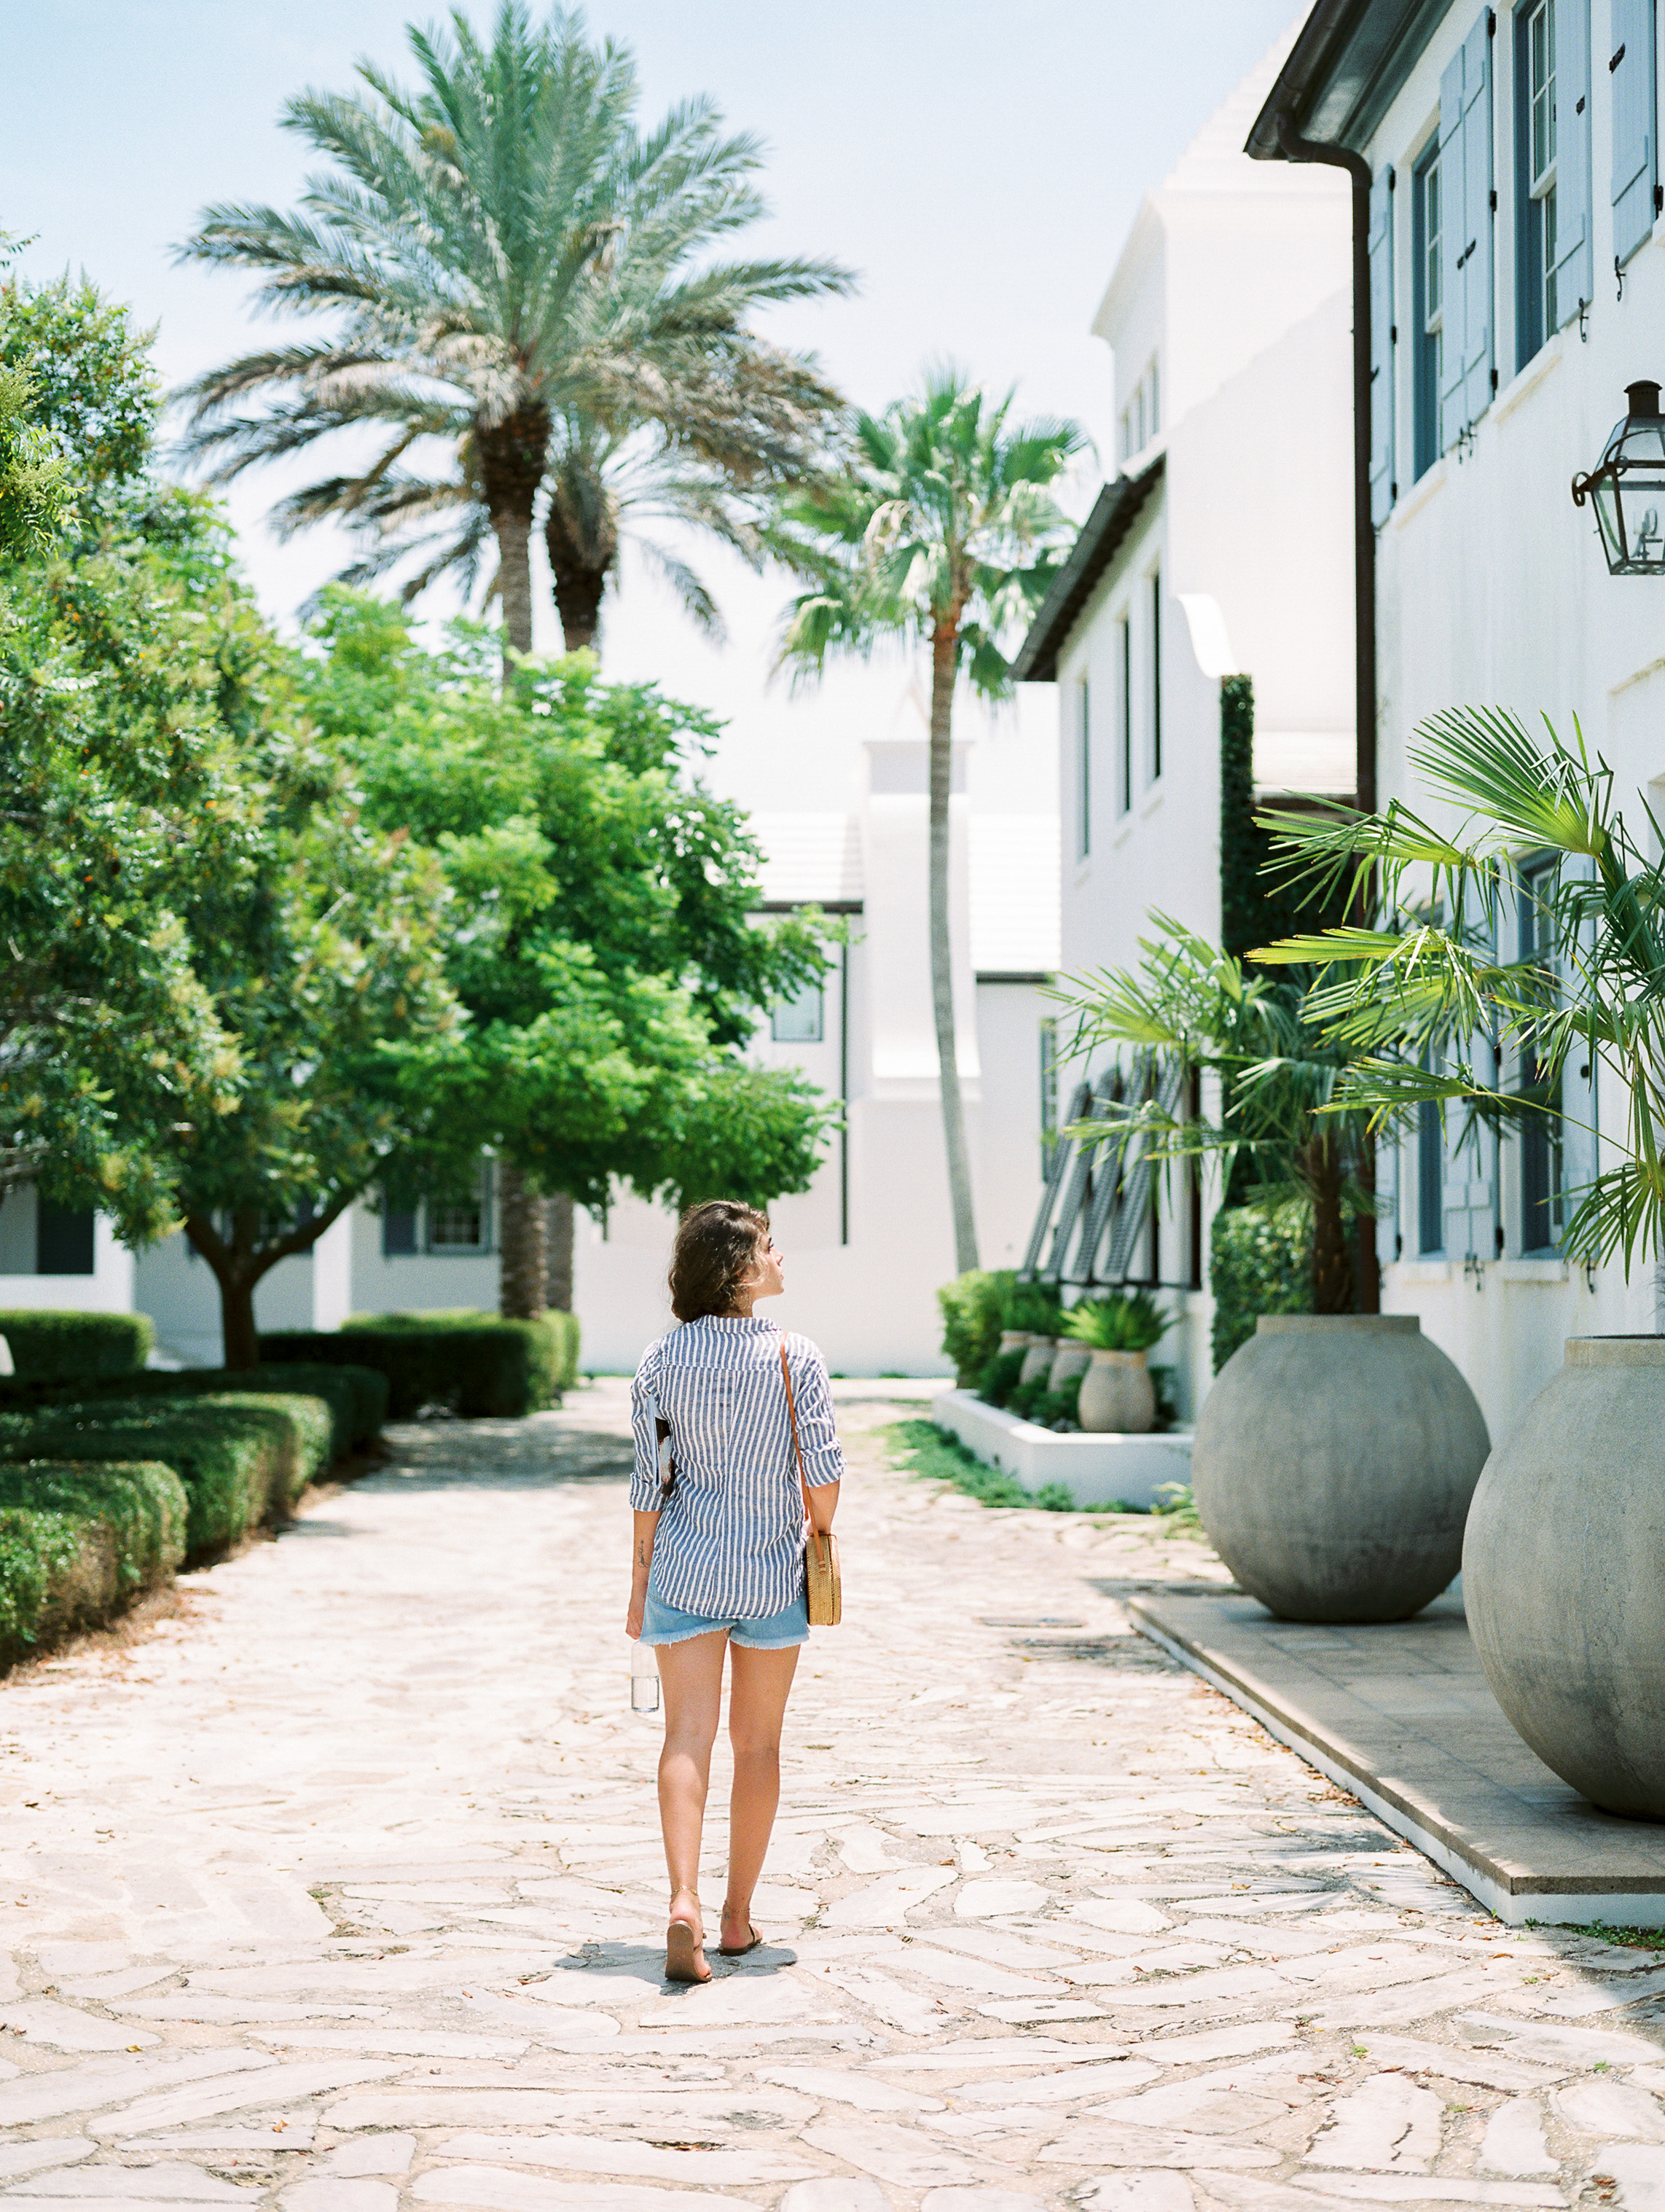 Alys_Beach_Travel_Film_Editorial_Wardrobe_30A_Fallen_Photography-78.JPG